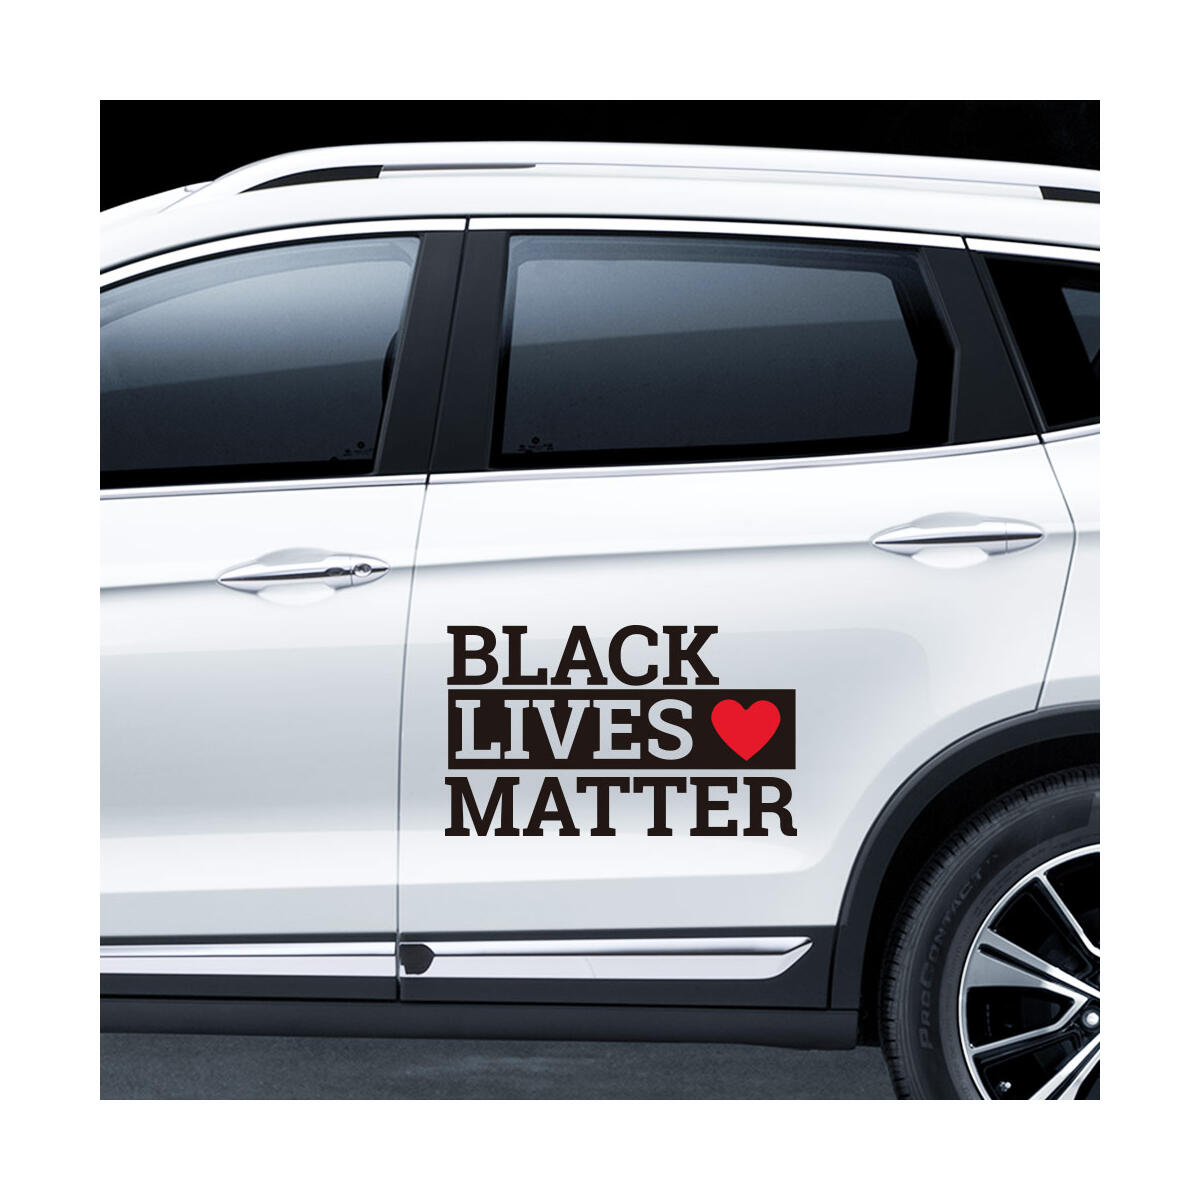 Black Lives Matter Sticker - 2 PCS Vinyl Decal BLM Sticker Laptop Stickers Wall Decal Waterproof BLM Car Sticker Bumper Stickers Car Window Stickers and Decals 10.6''x6.3''